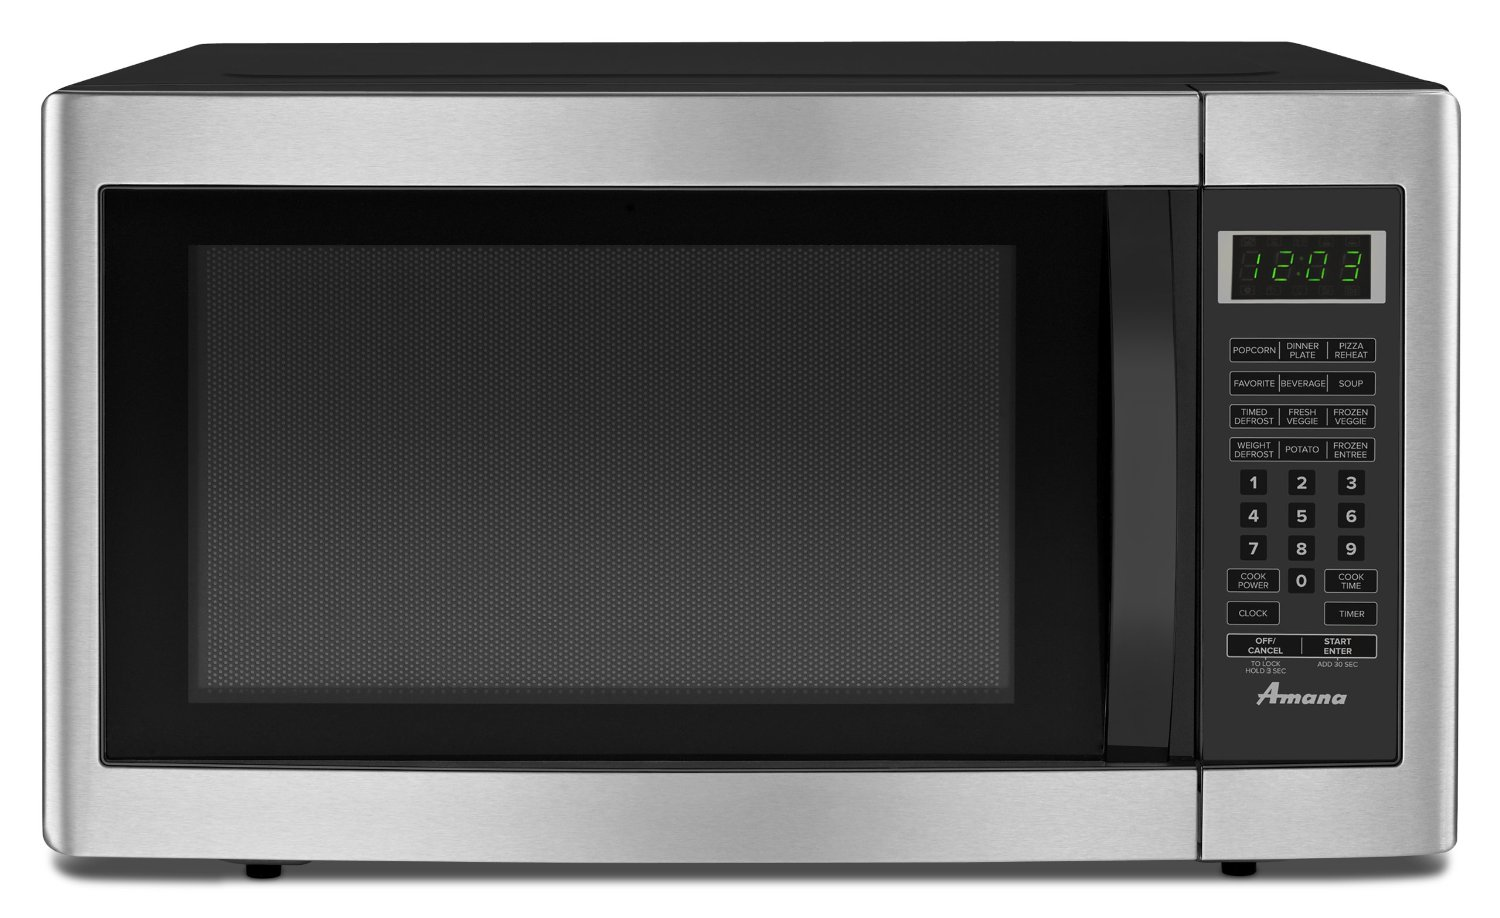 Amana 1.6 cu. ft. Countertop Microwave Oven